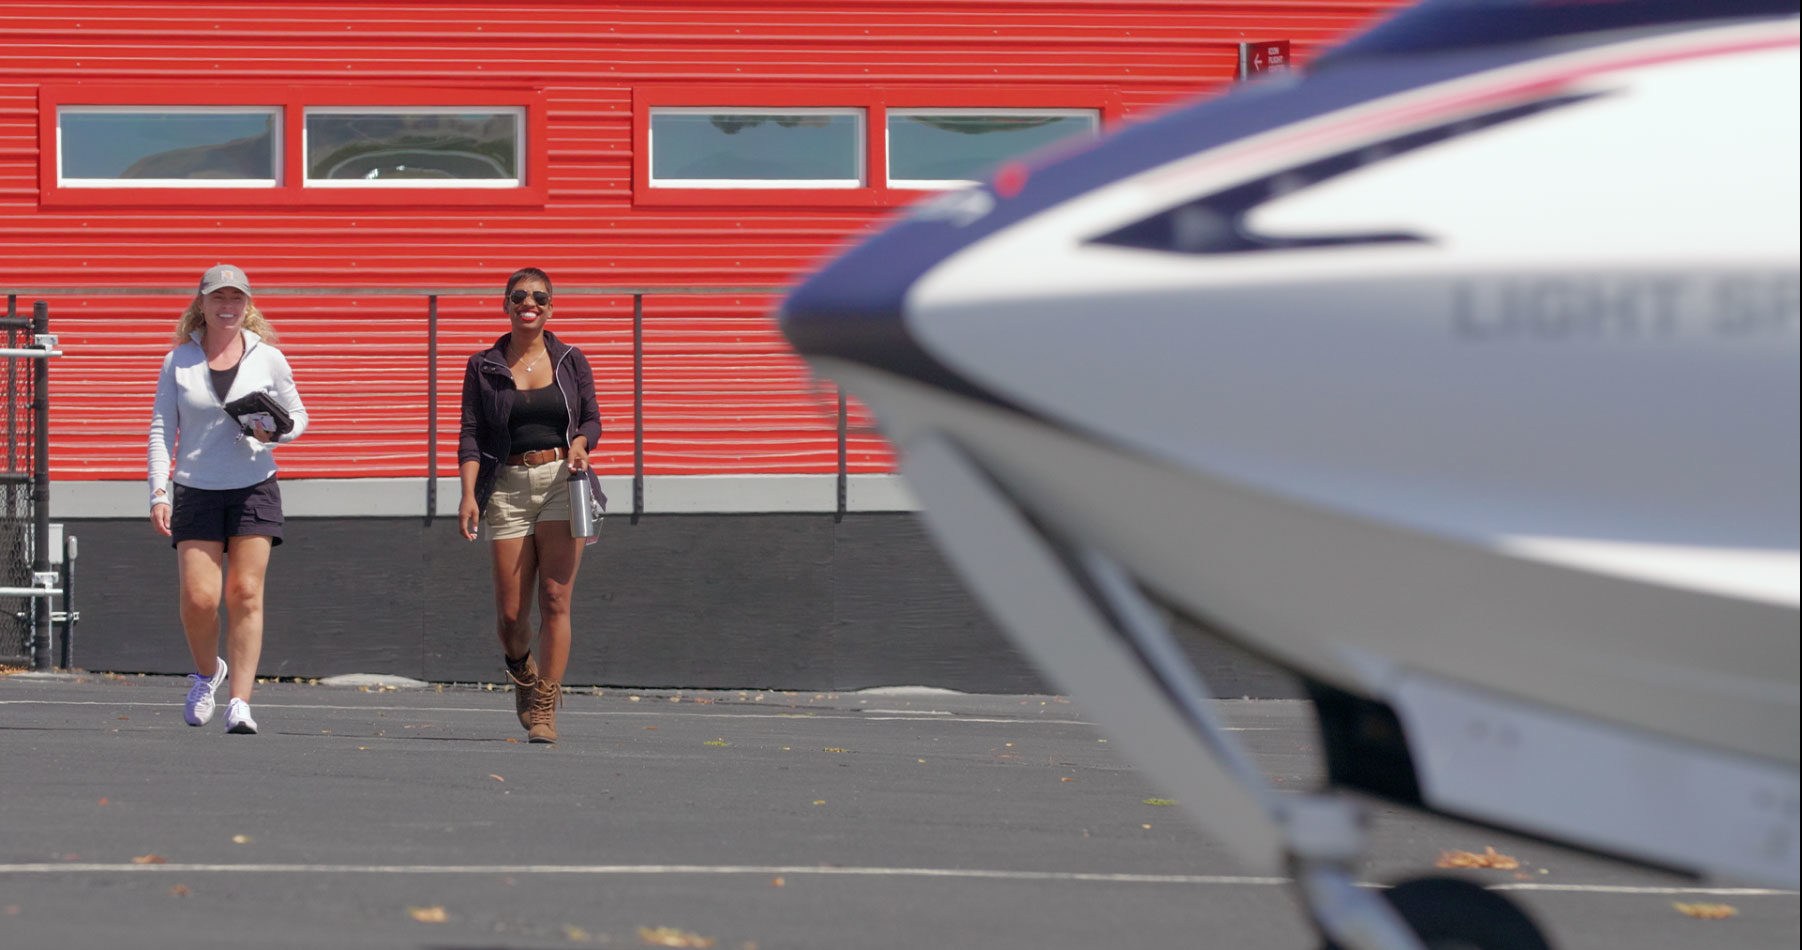 Preparing to take off in the ICON A5 seaplane at the ICON Aircraft flight school in Vacaville, CA.